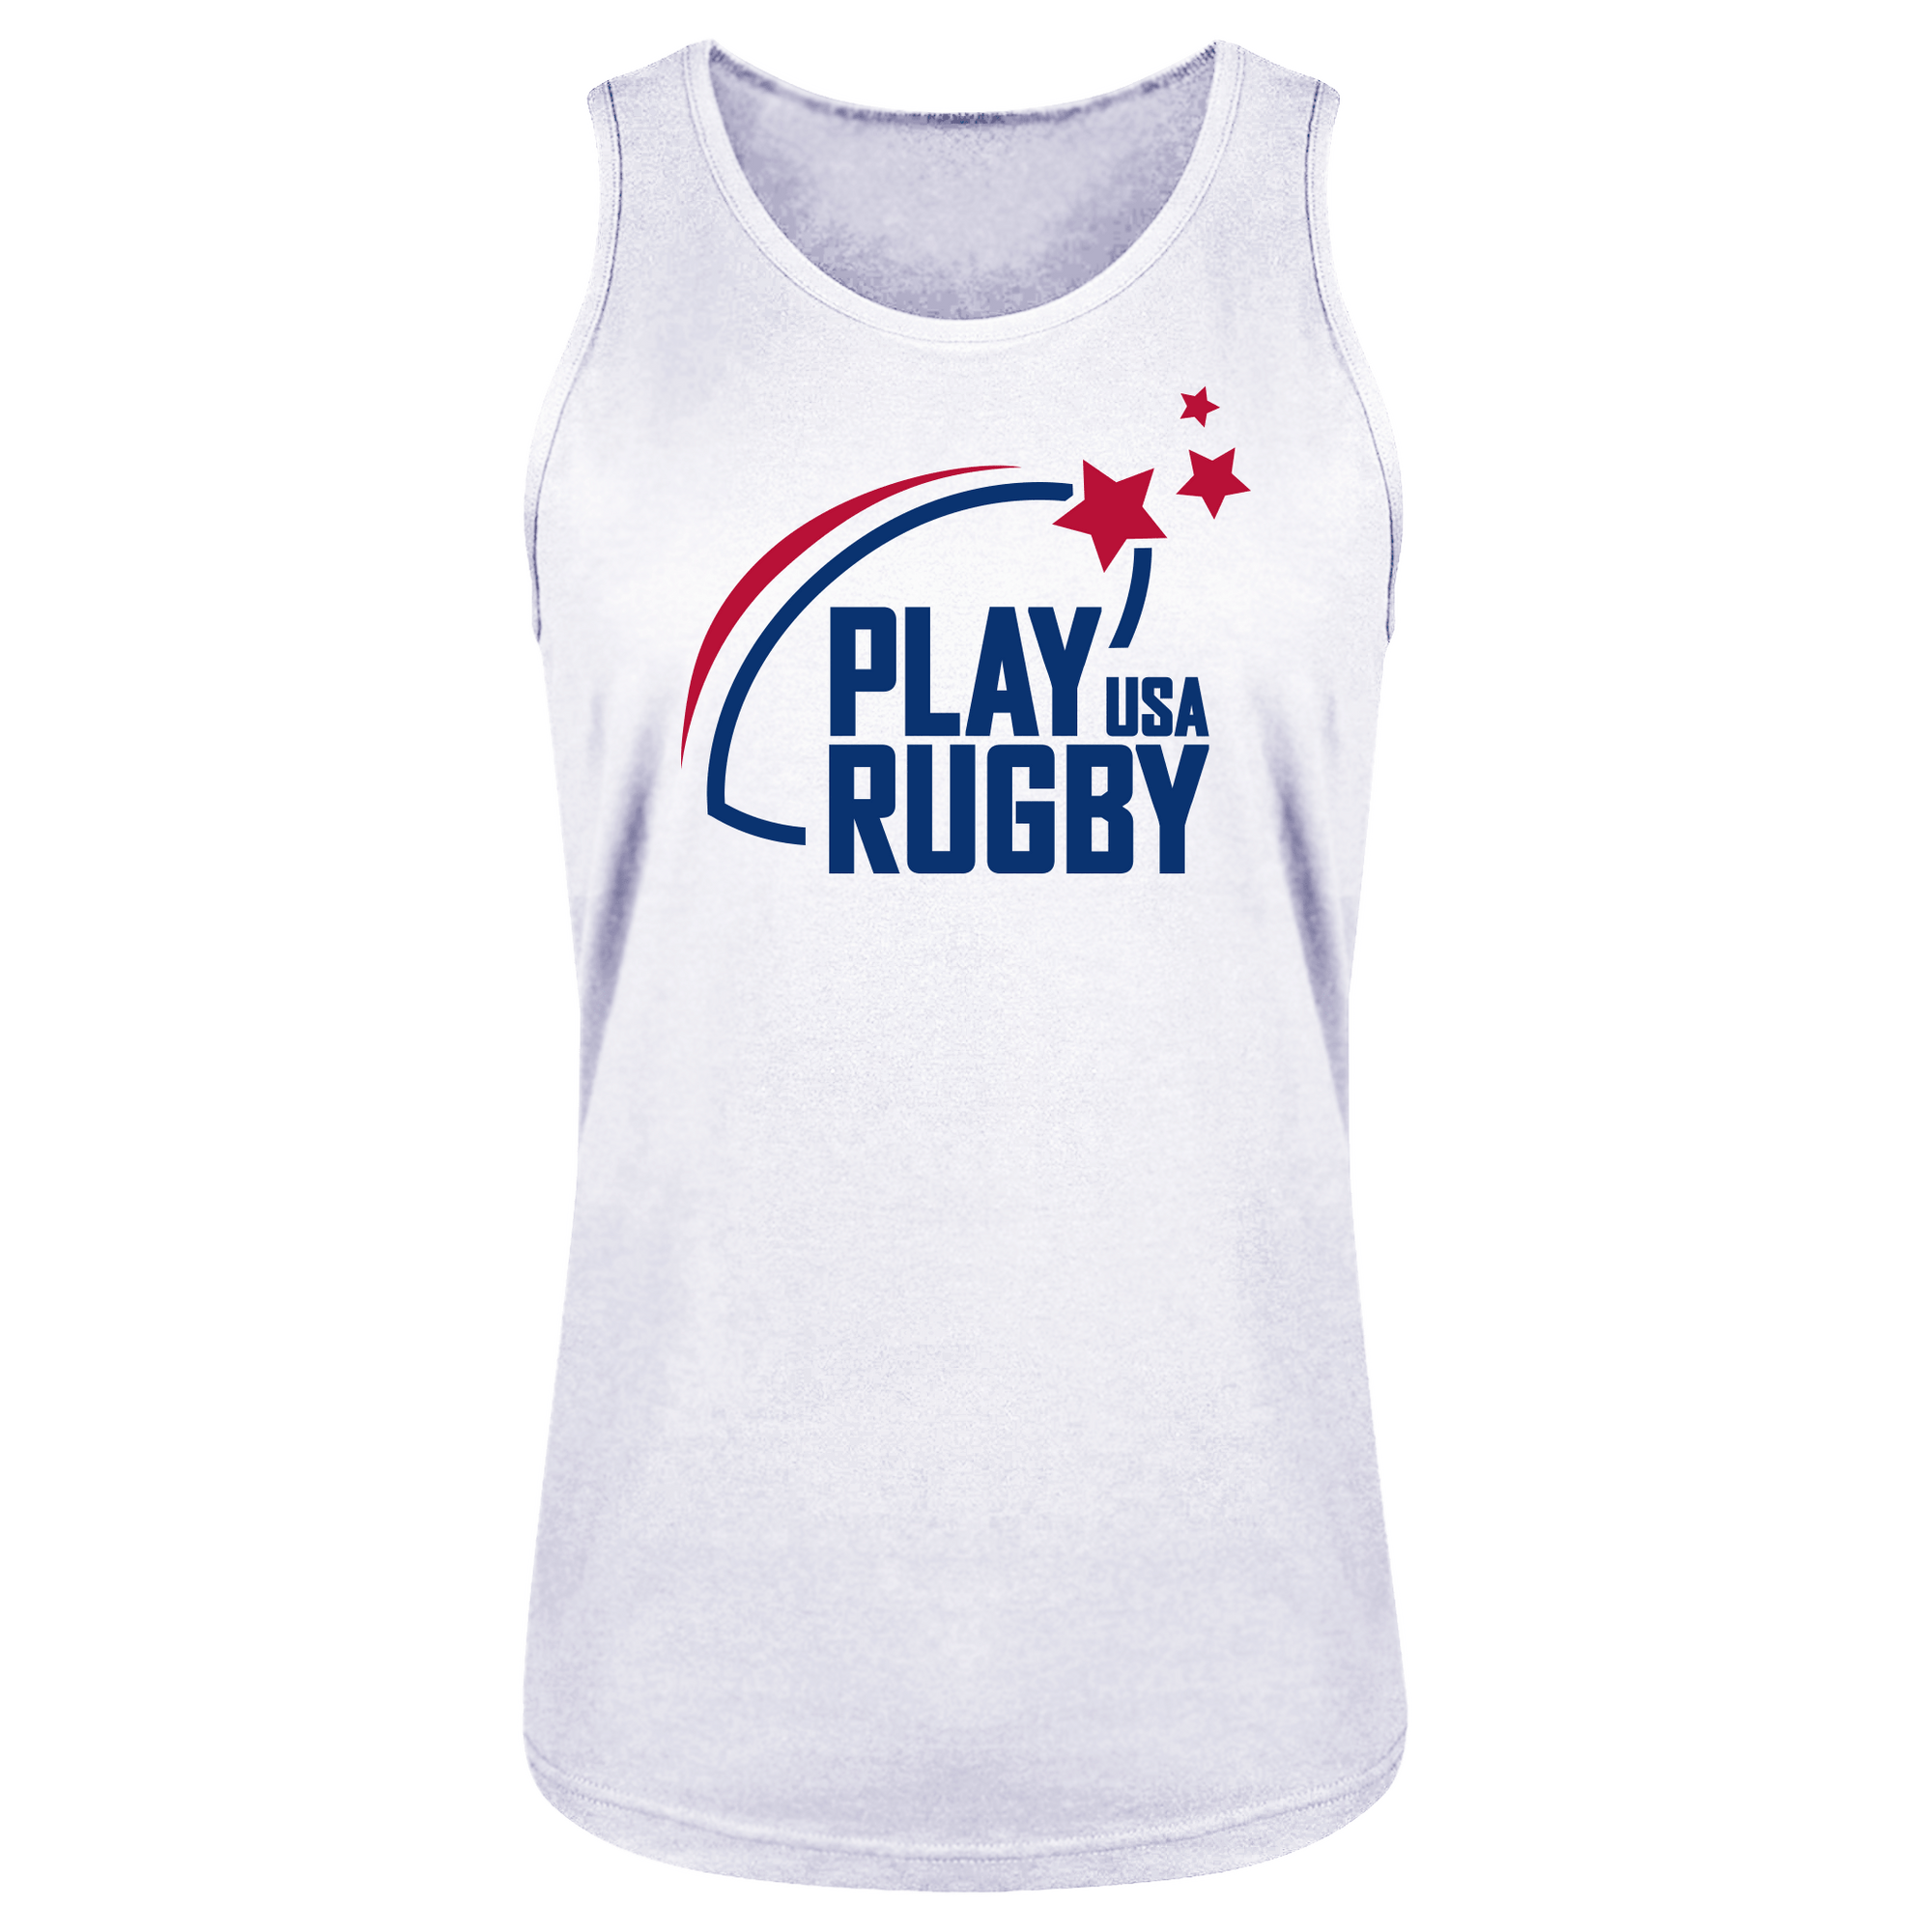 Play Rugby USA Bingtang Singlet White